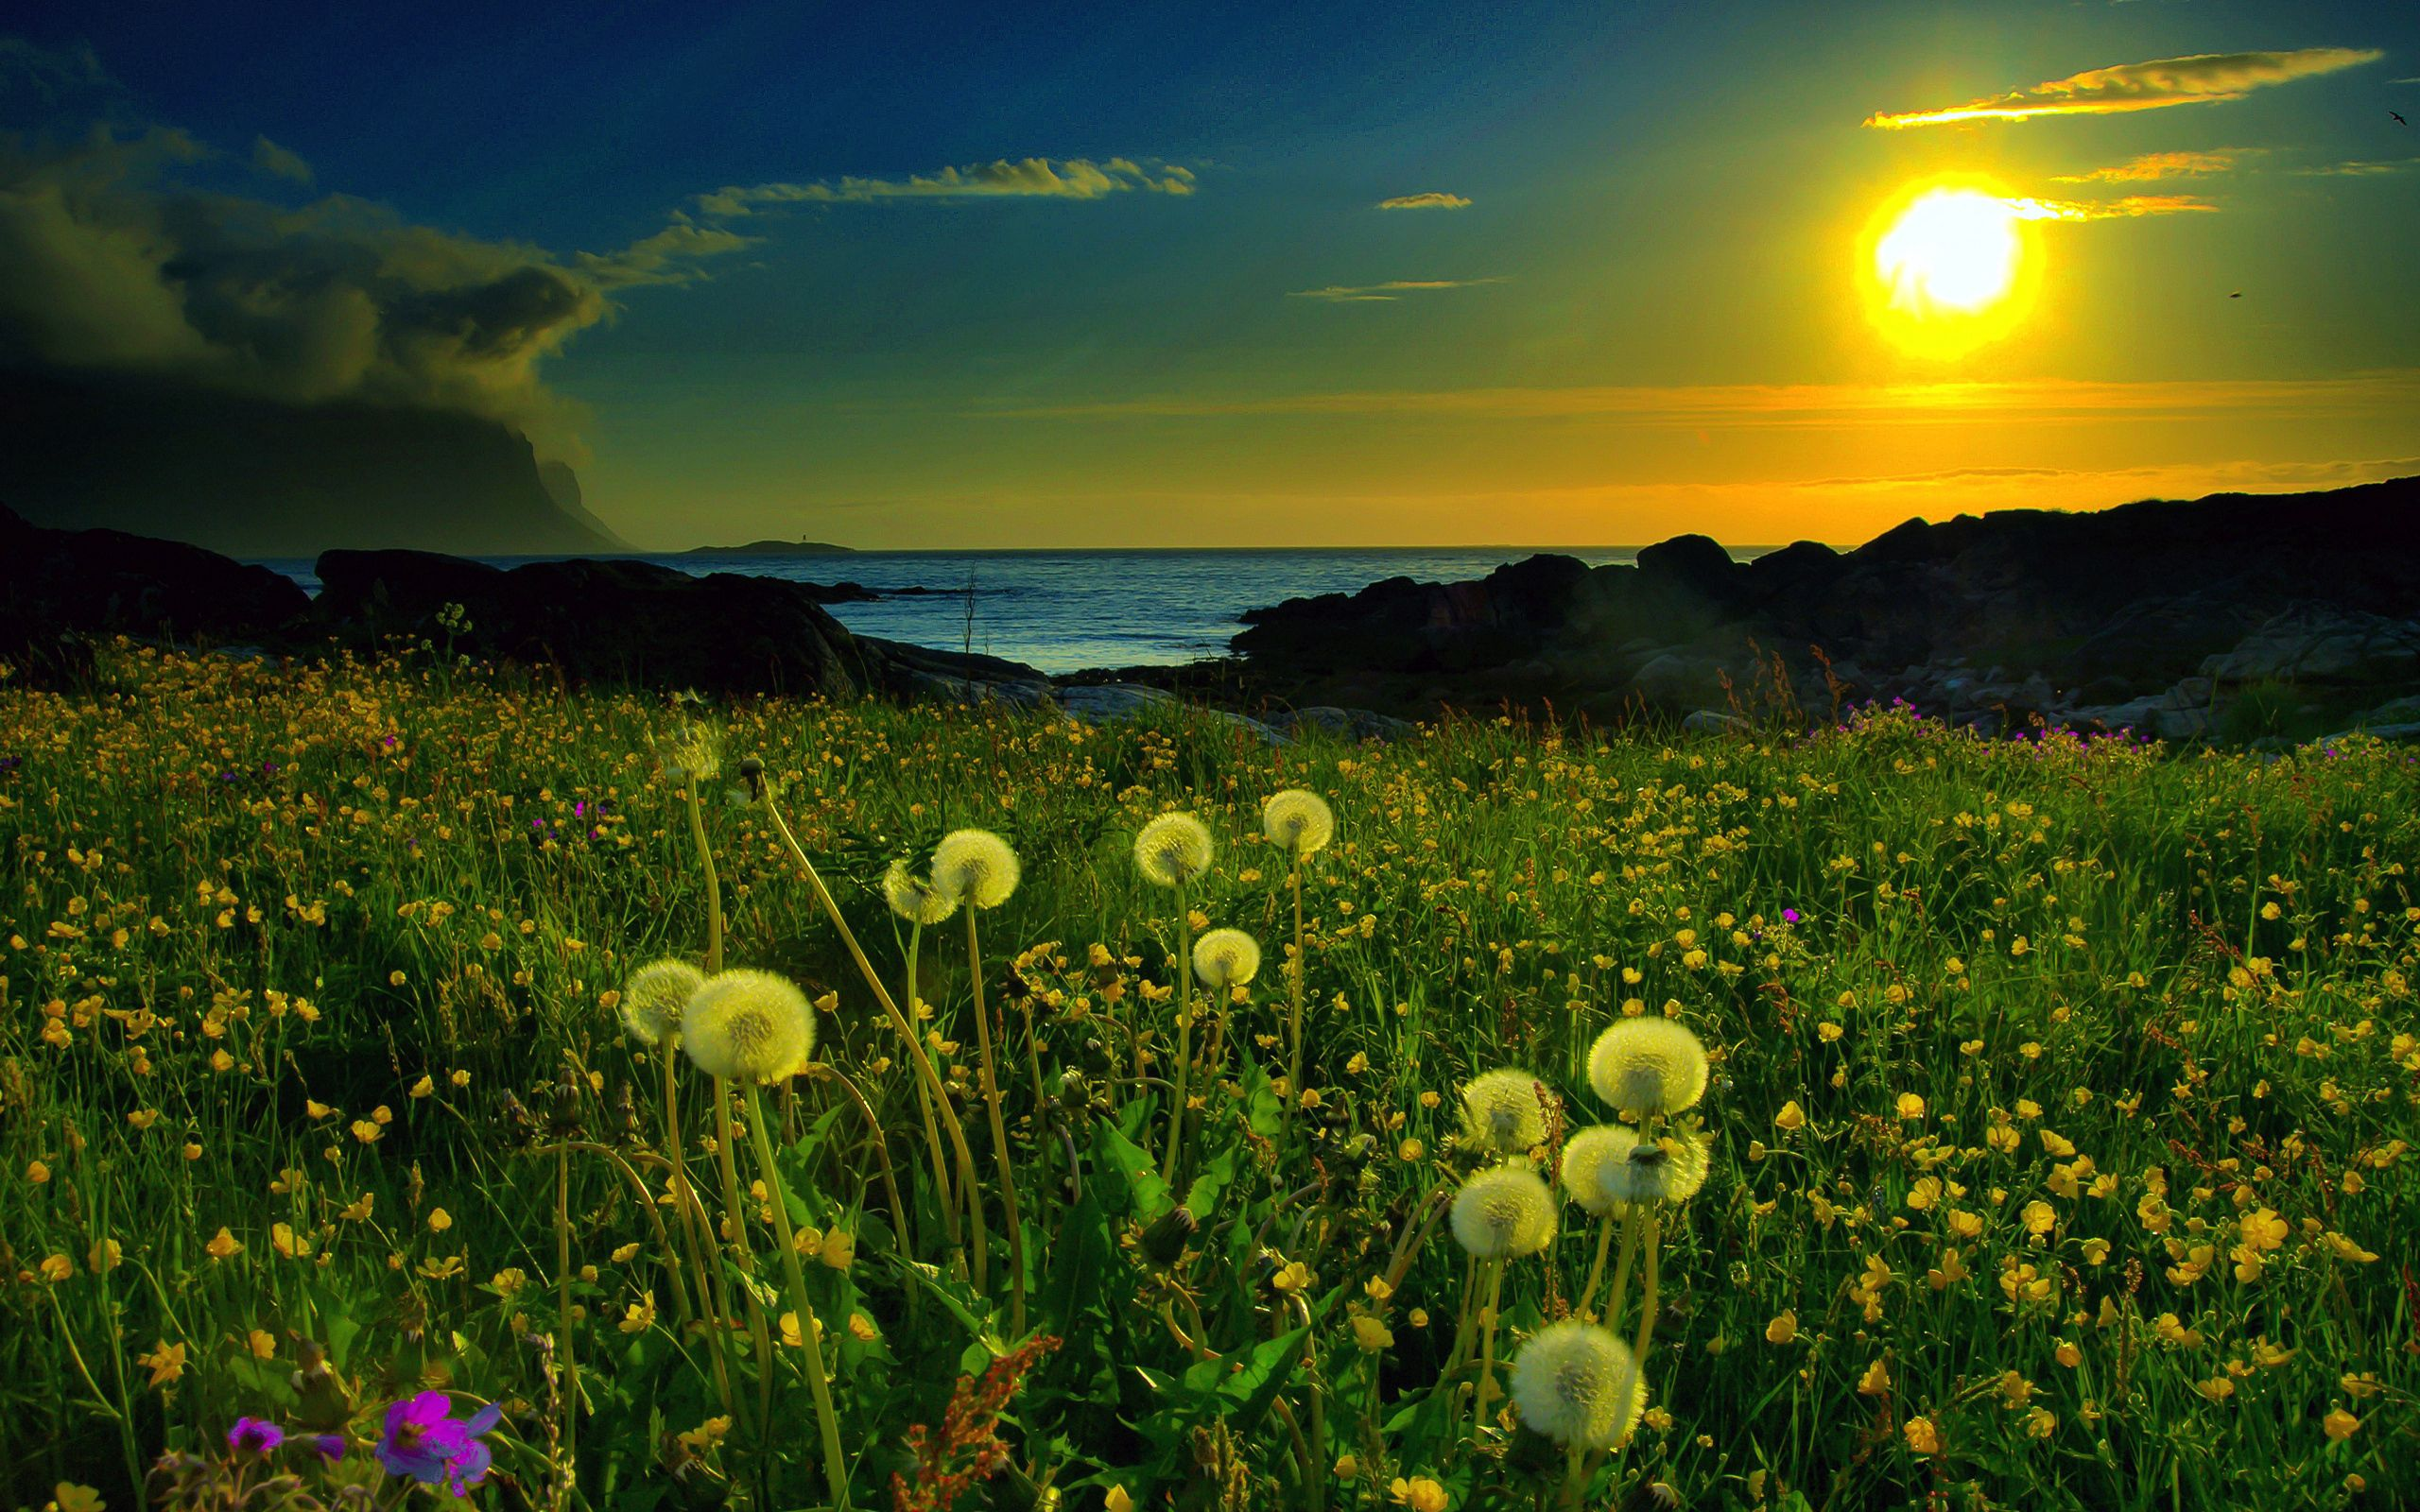 68389 download wallpaper Nature, Grass, Sky, Mountains, Sea, Dandelions, Clouds, Shine, Light, Evening, Glow screensavers and pictures for free